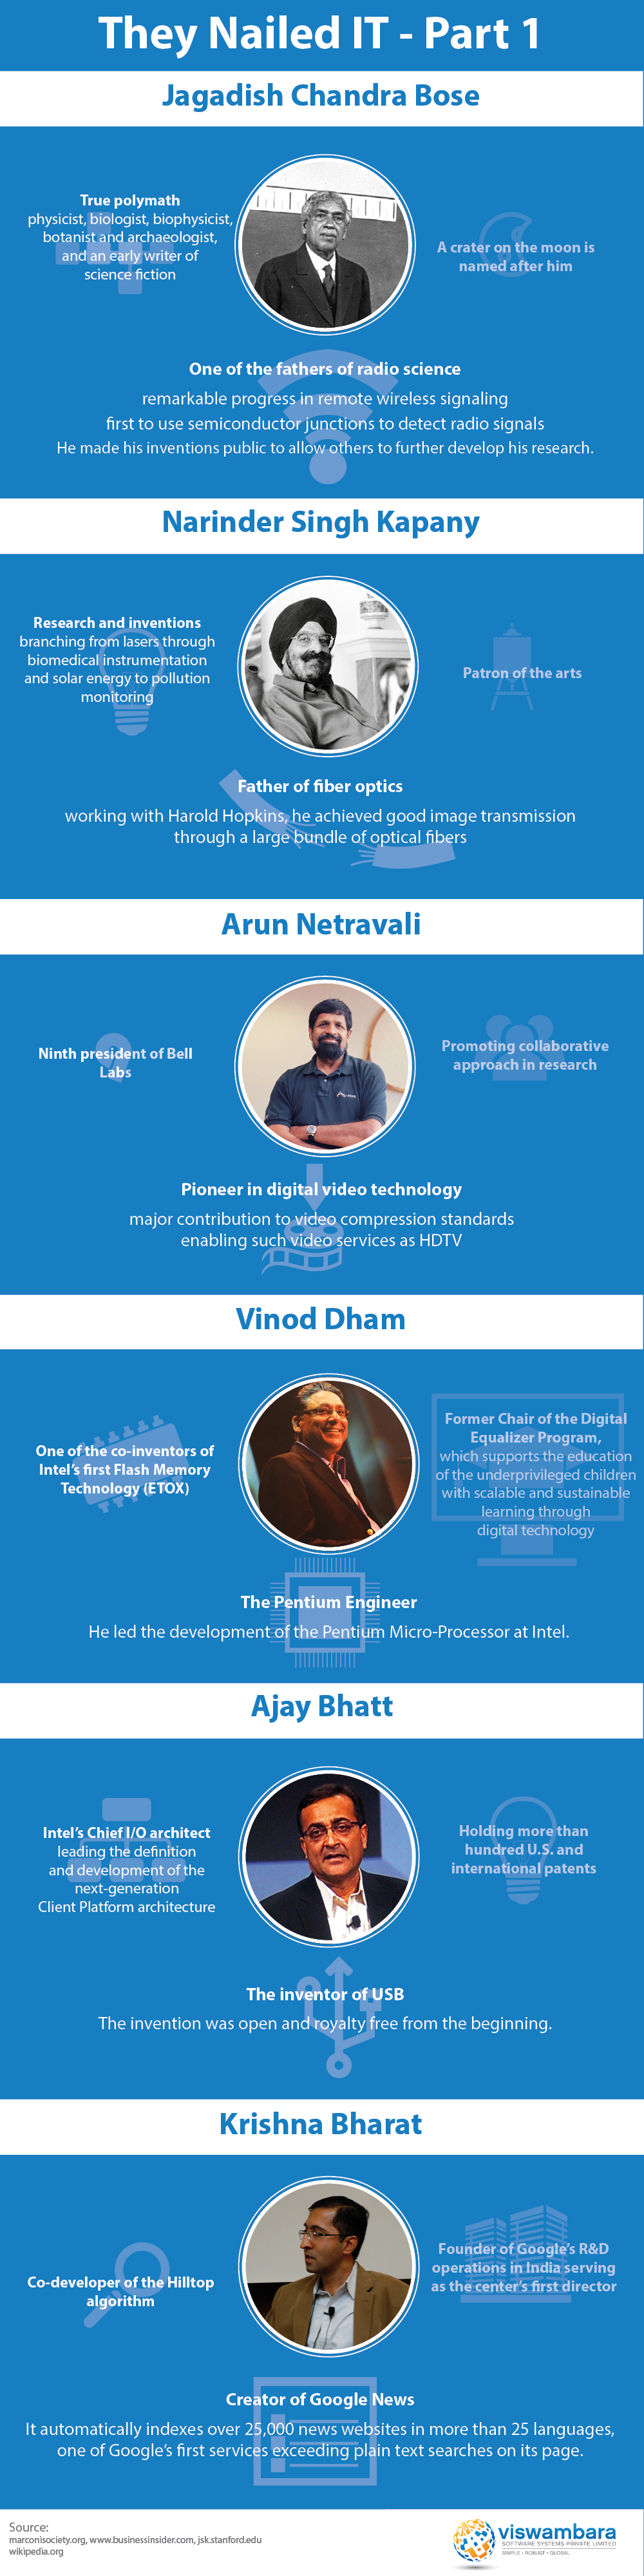 Prominent figures of software industry in India